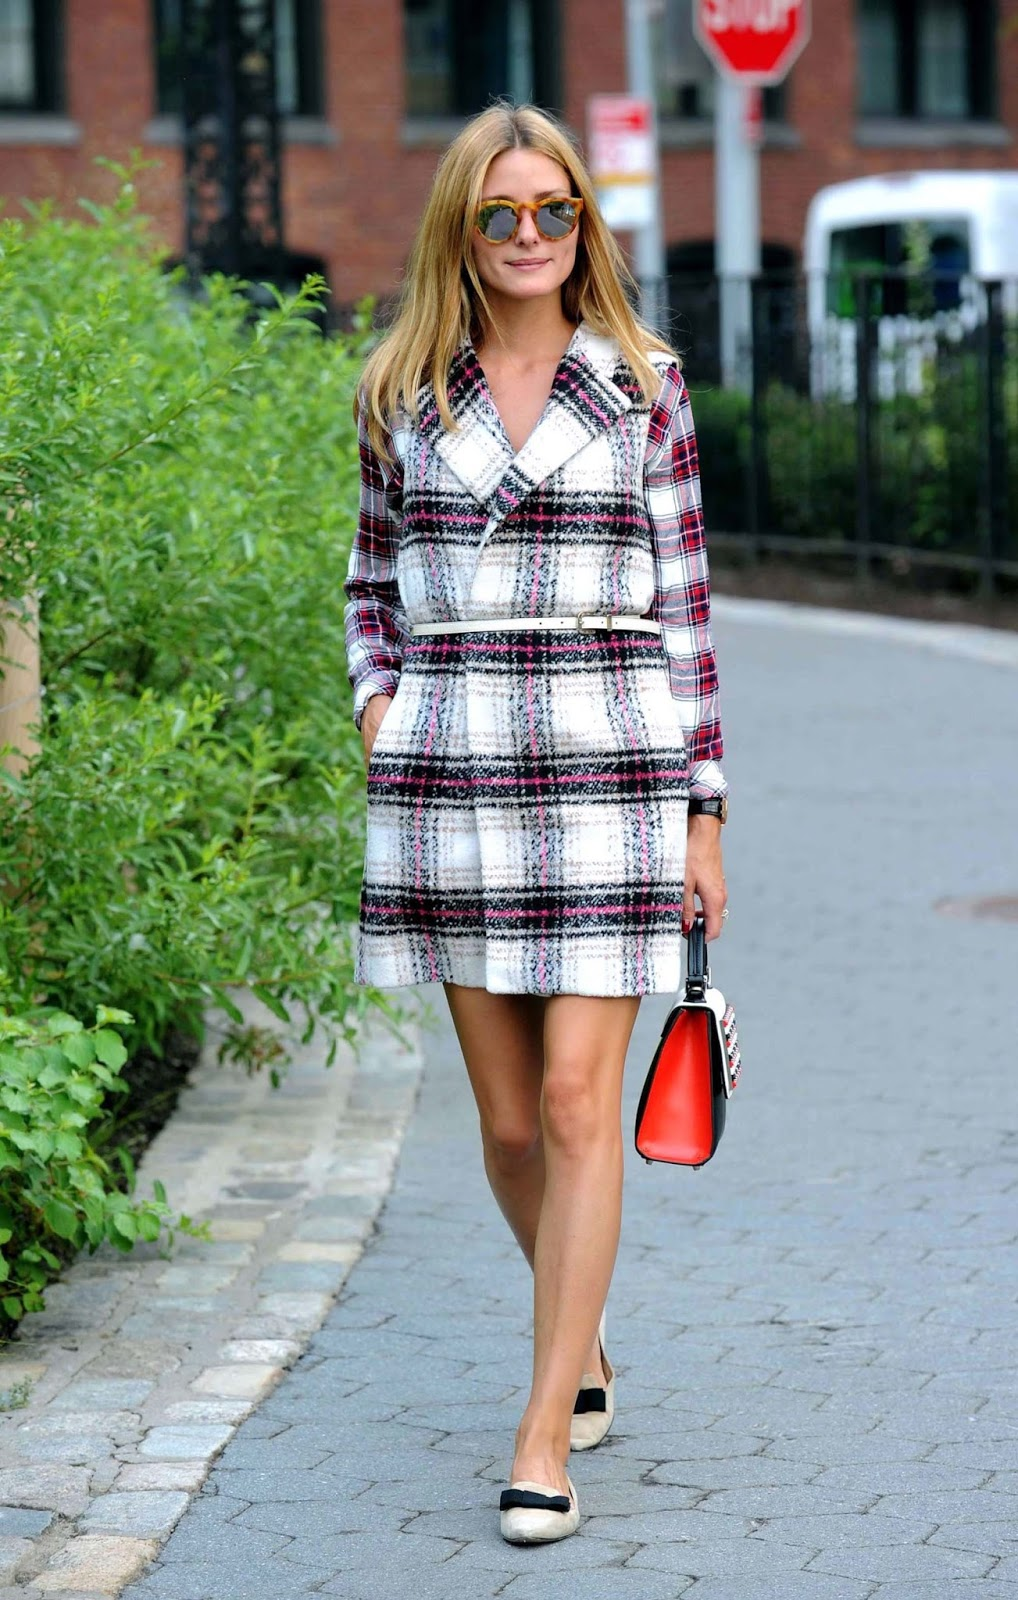 25 all time best pictures of olivia palermo style and fashion - Olivia Palermo In New York